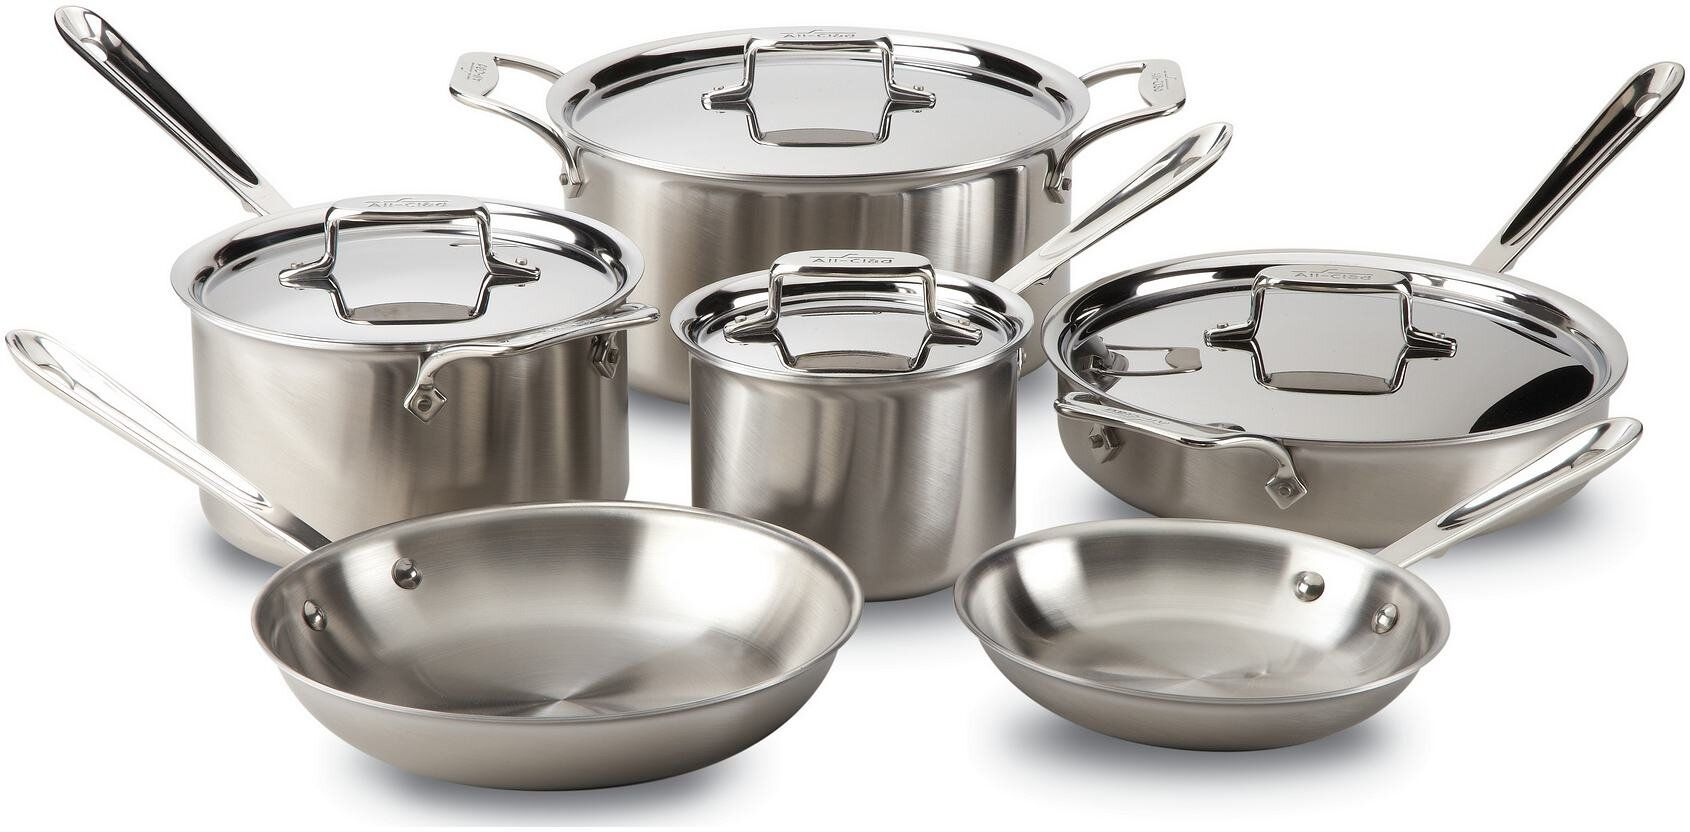 All Clad D5 Brushed Stainless Steel 10pc Cookware Set In 2021 Dishwasher Safe Cookware Safest Cookware Cookware Set All clad d5 brushed stainless steel 10 piece set